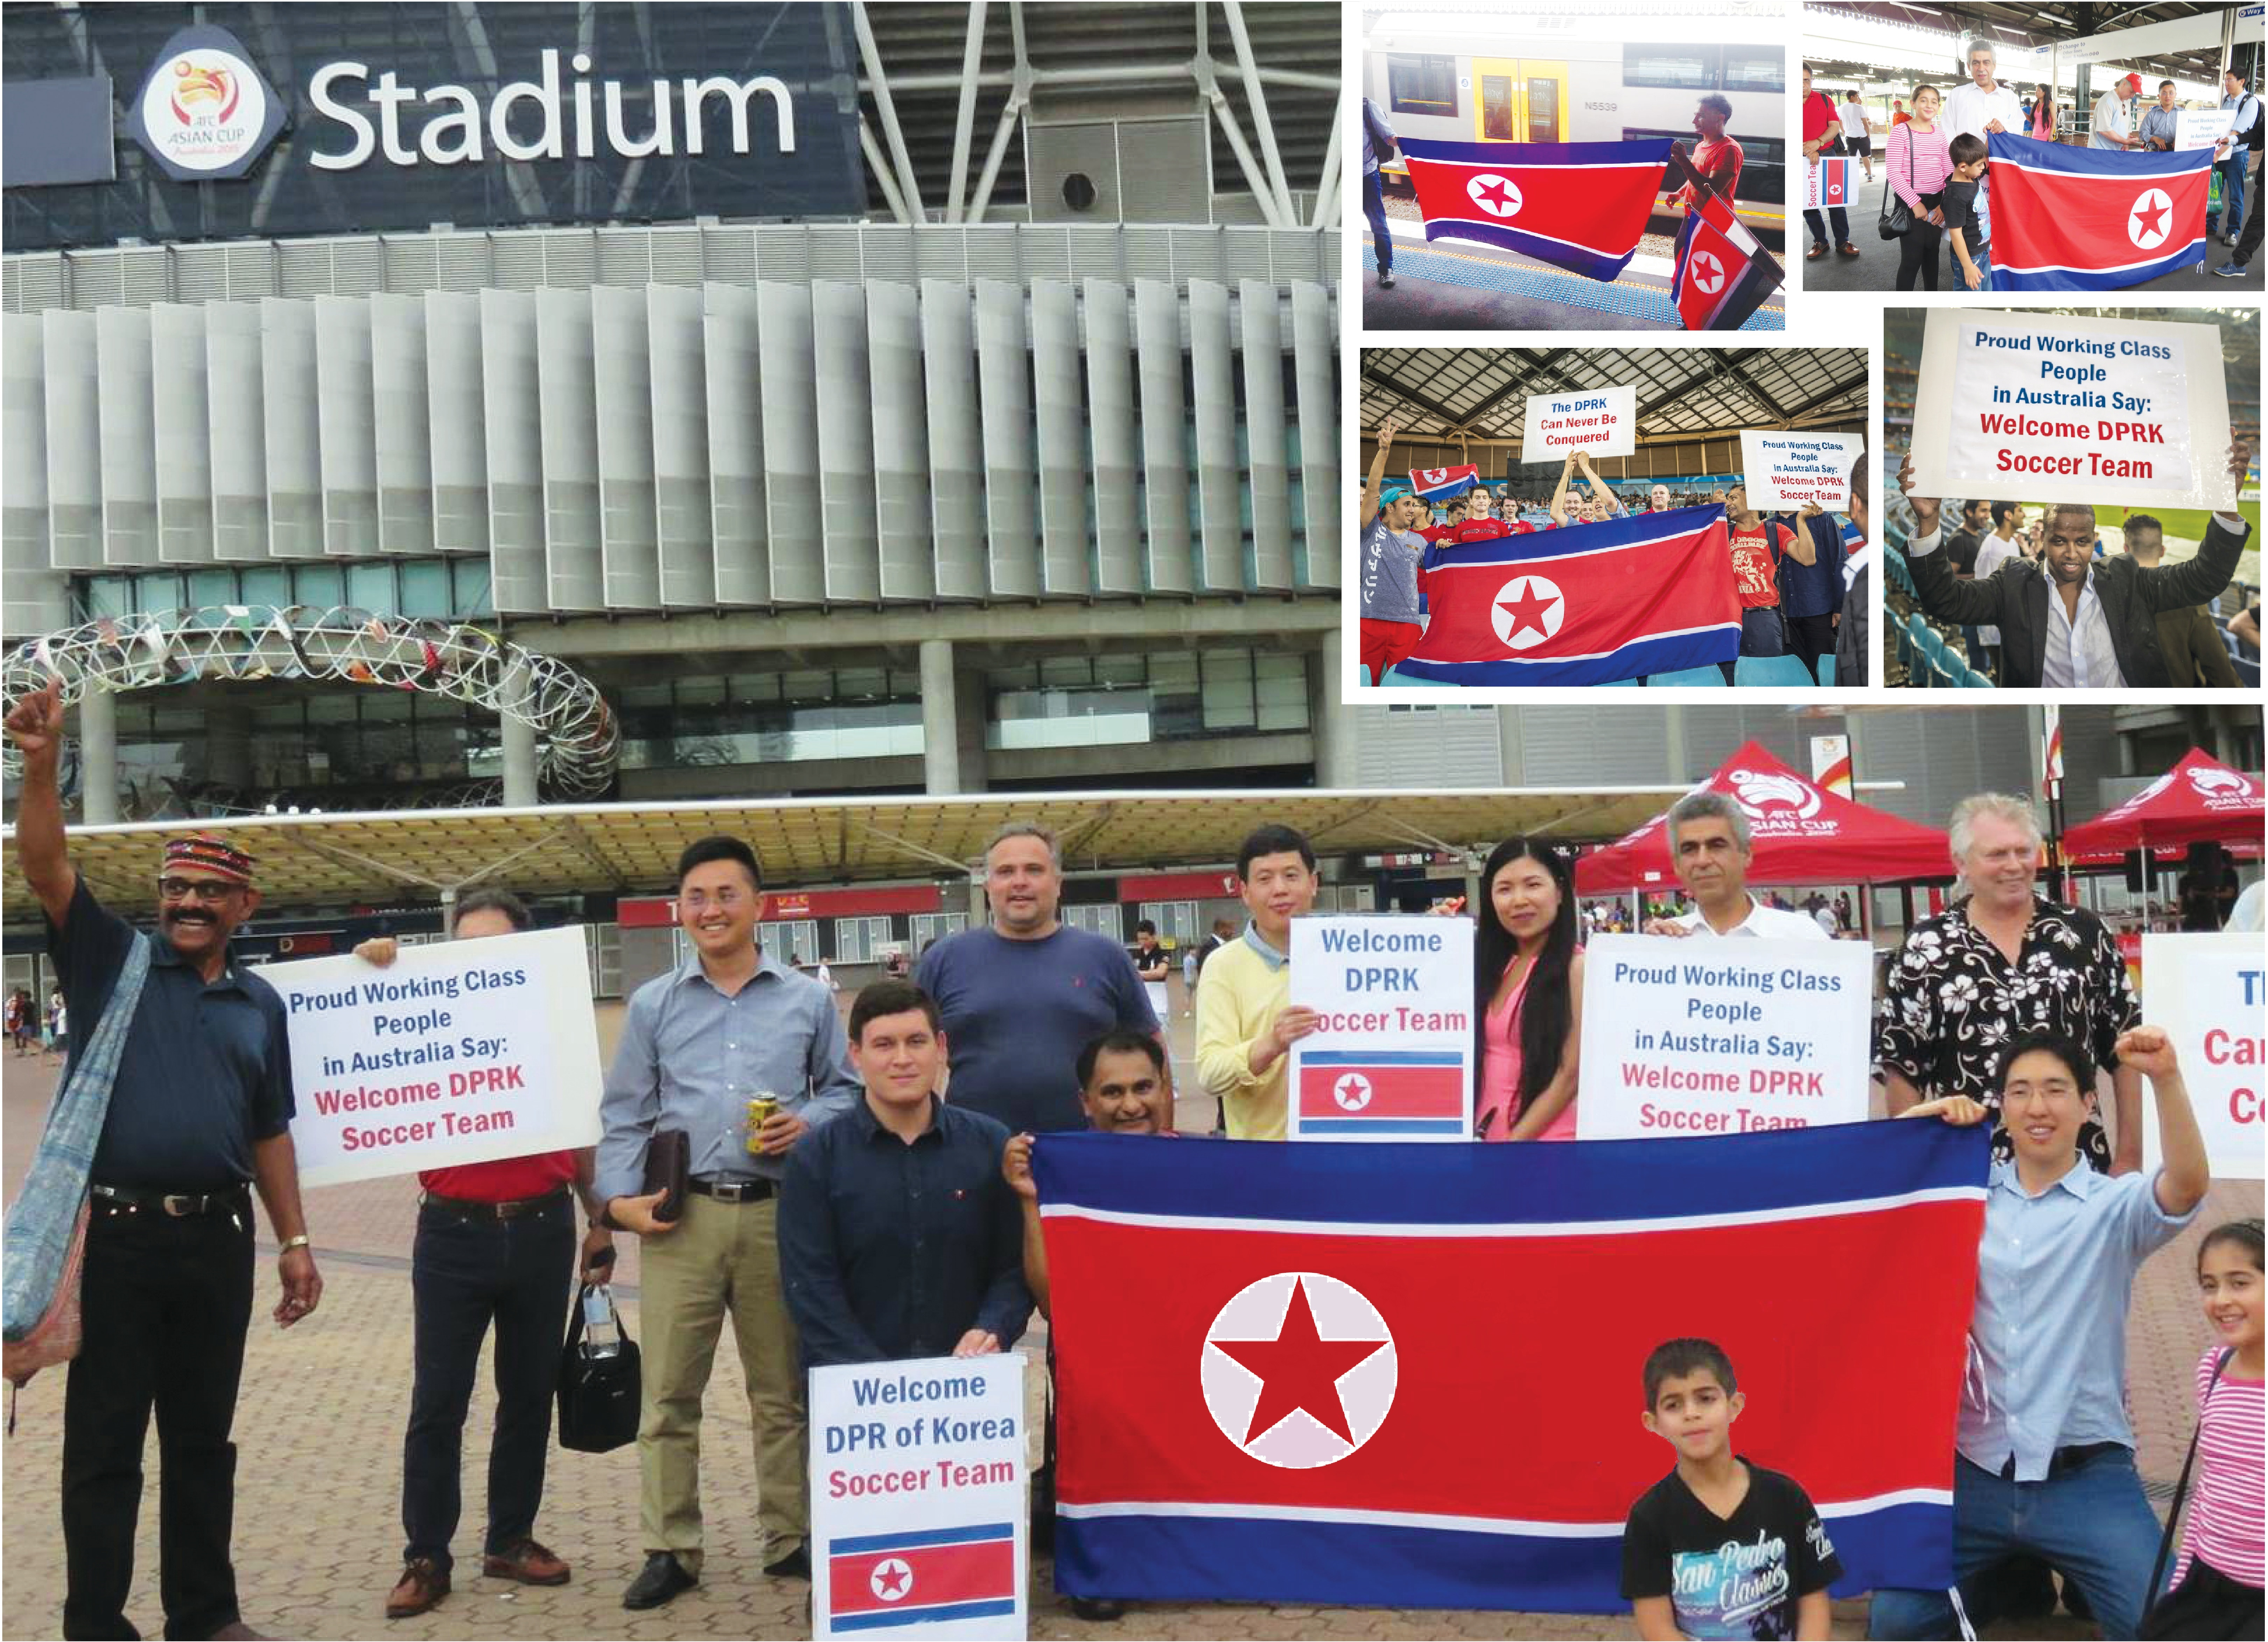 DPRK Asia Cup photo outside stadium